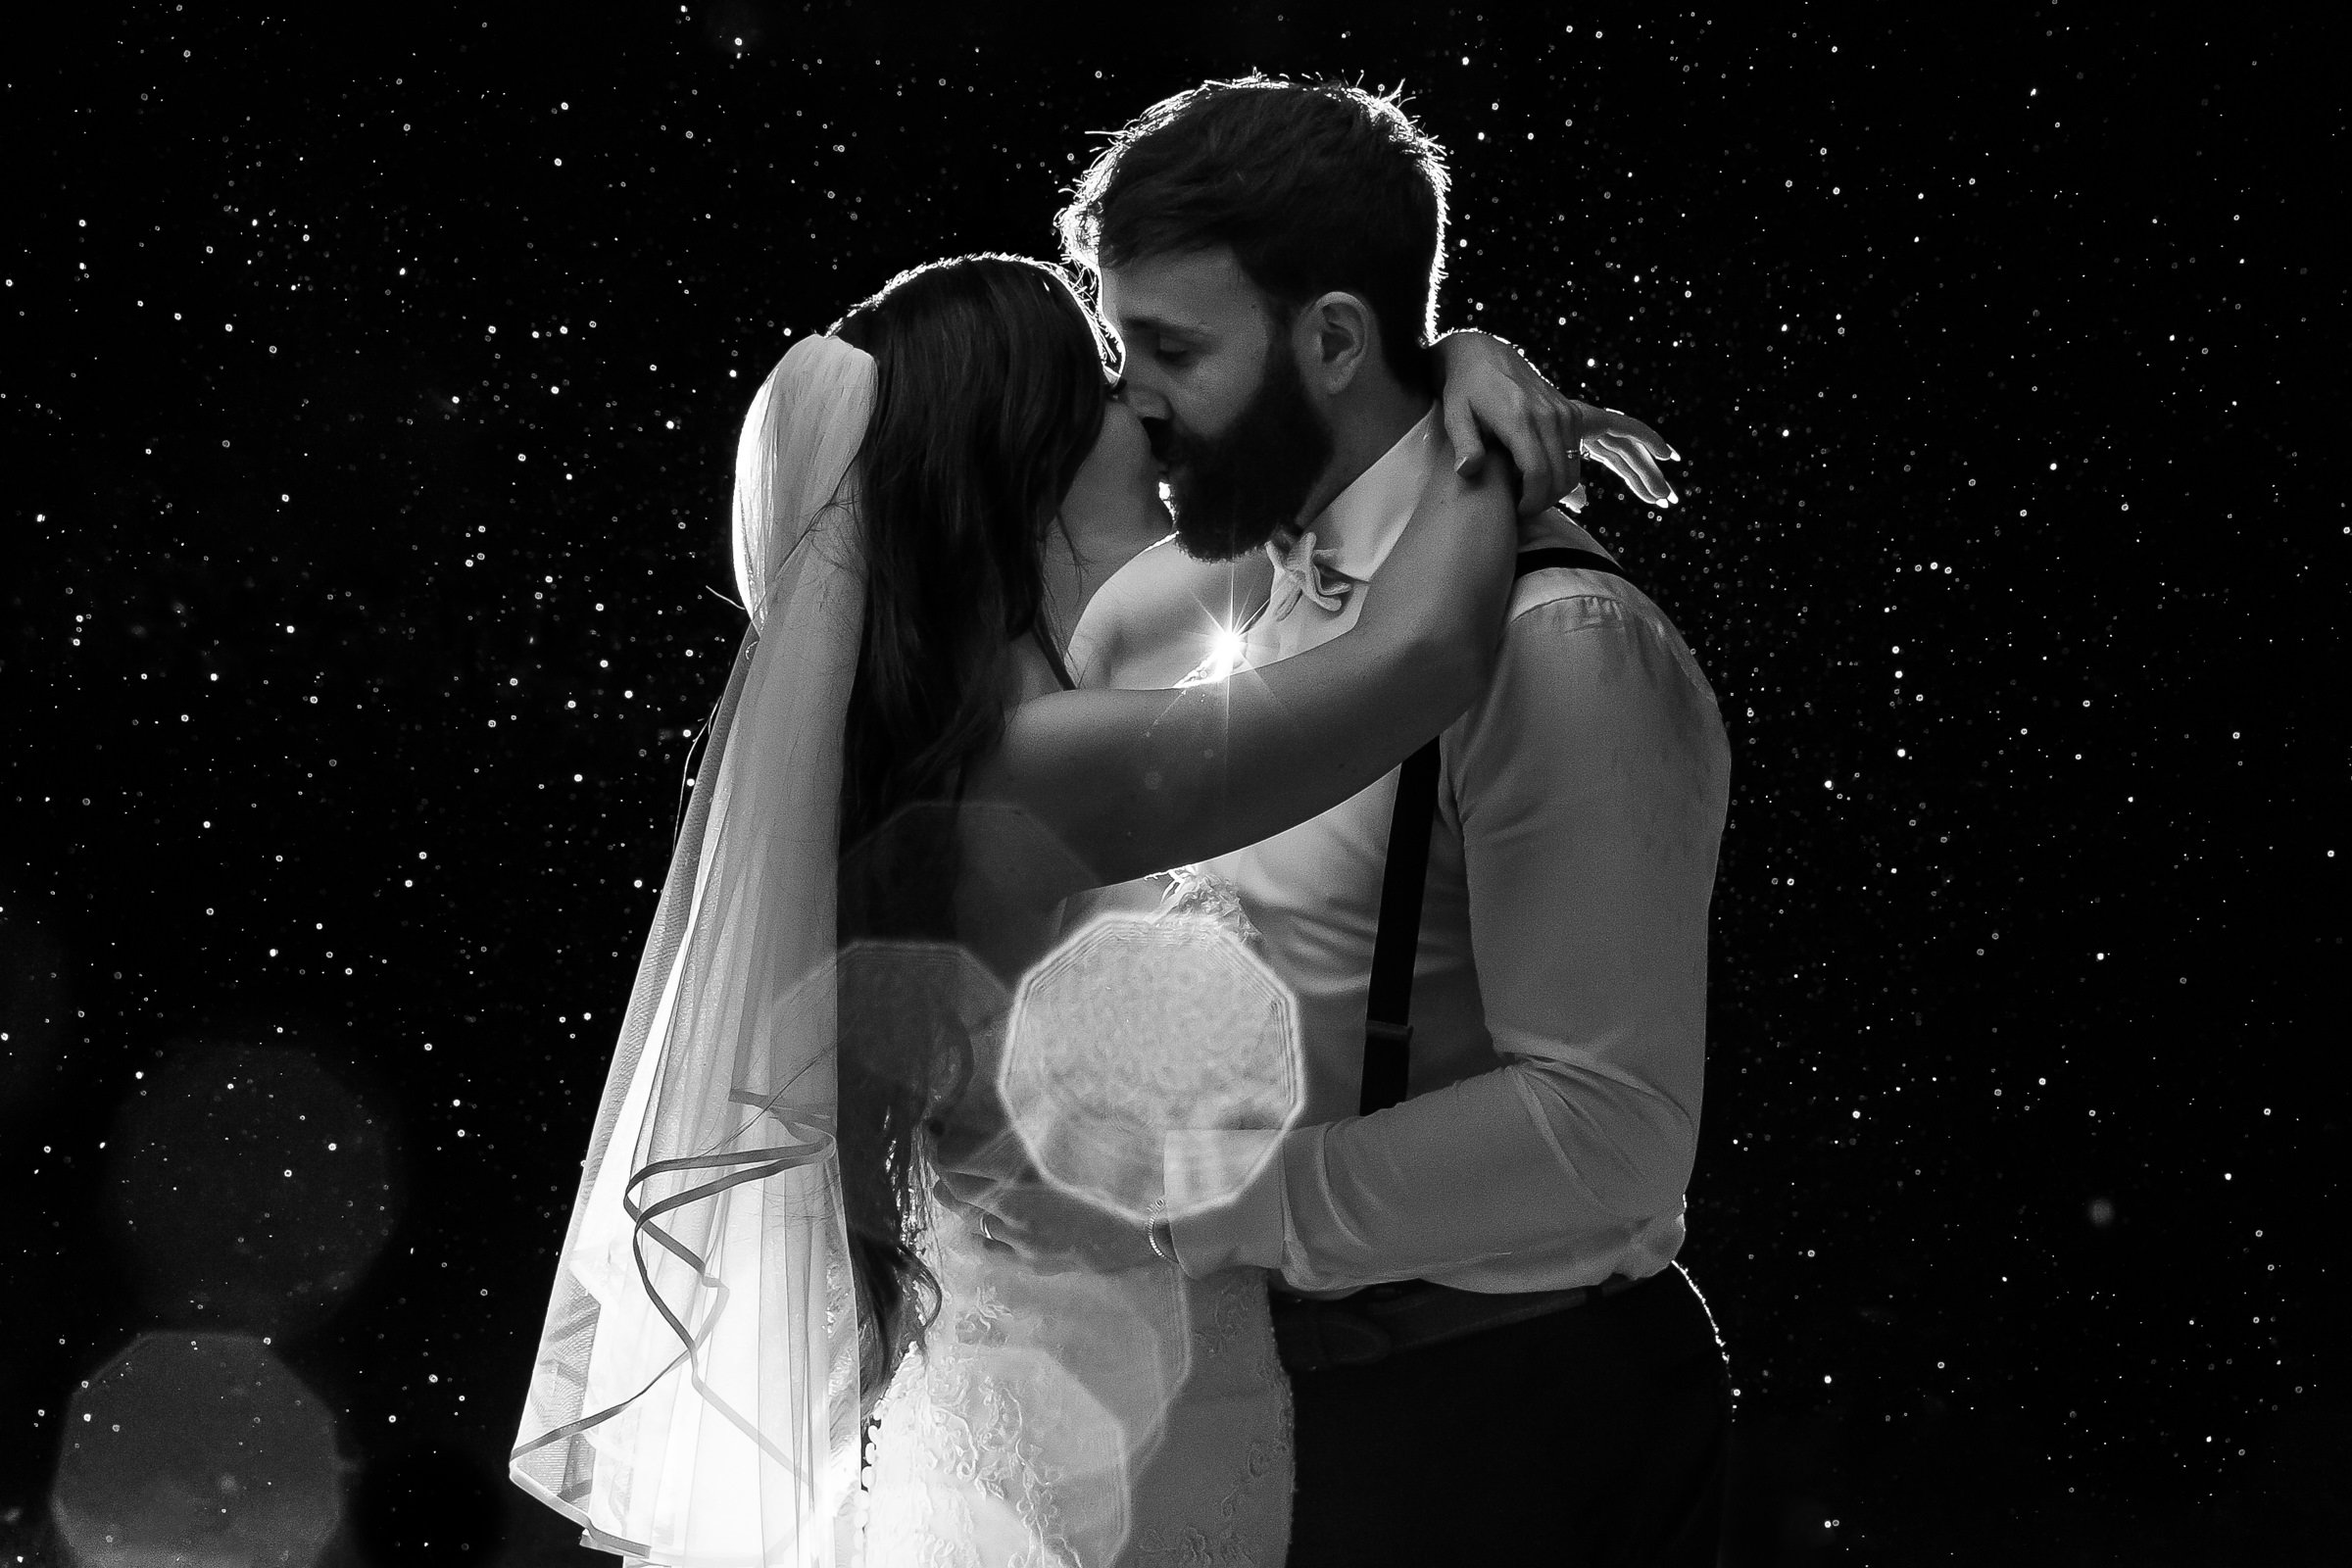 Night time black and white wedding photo